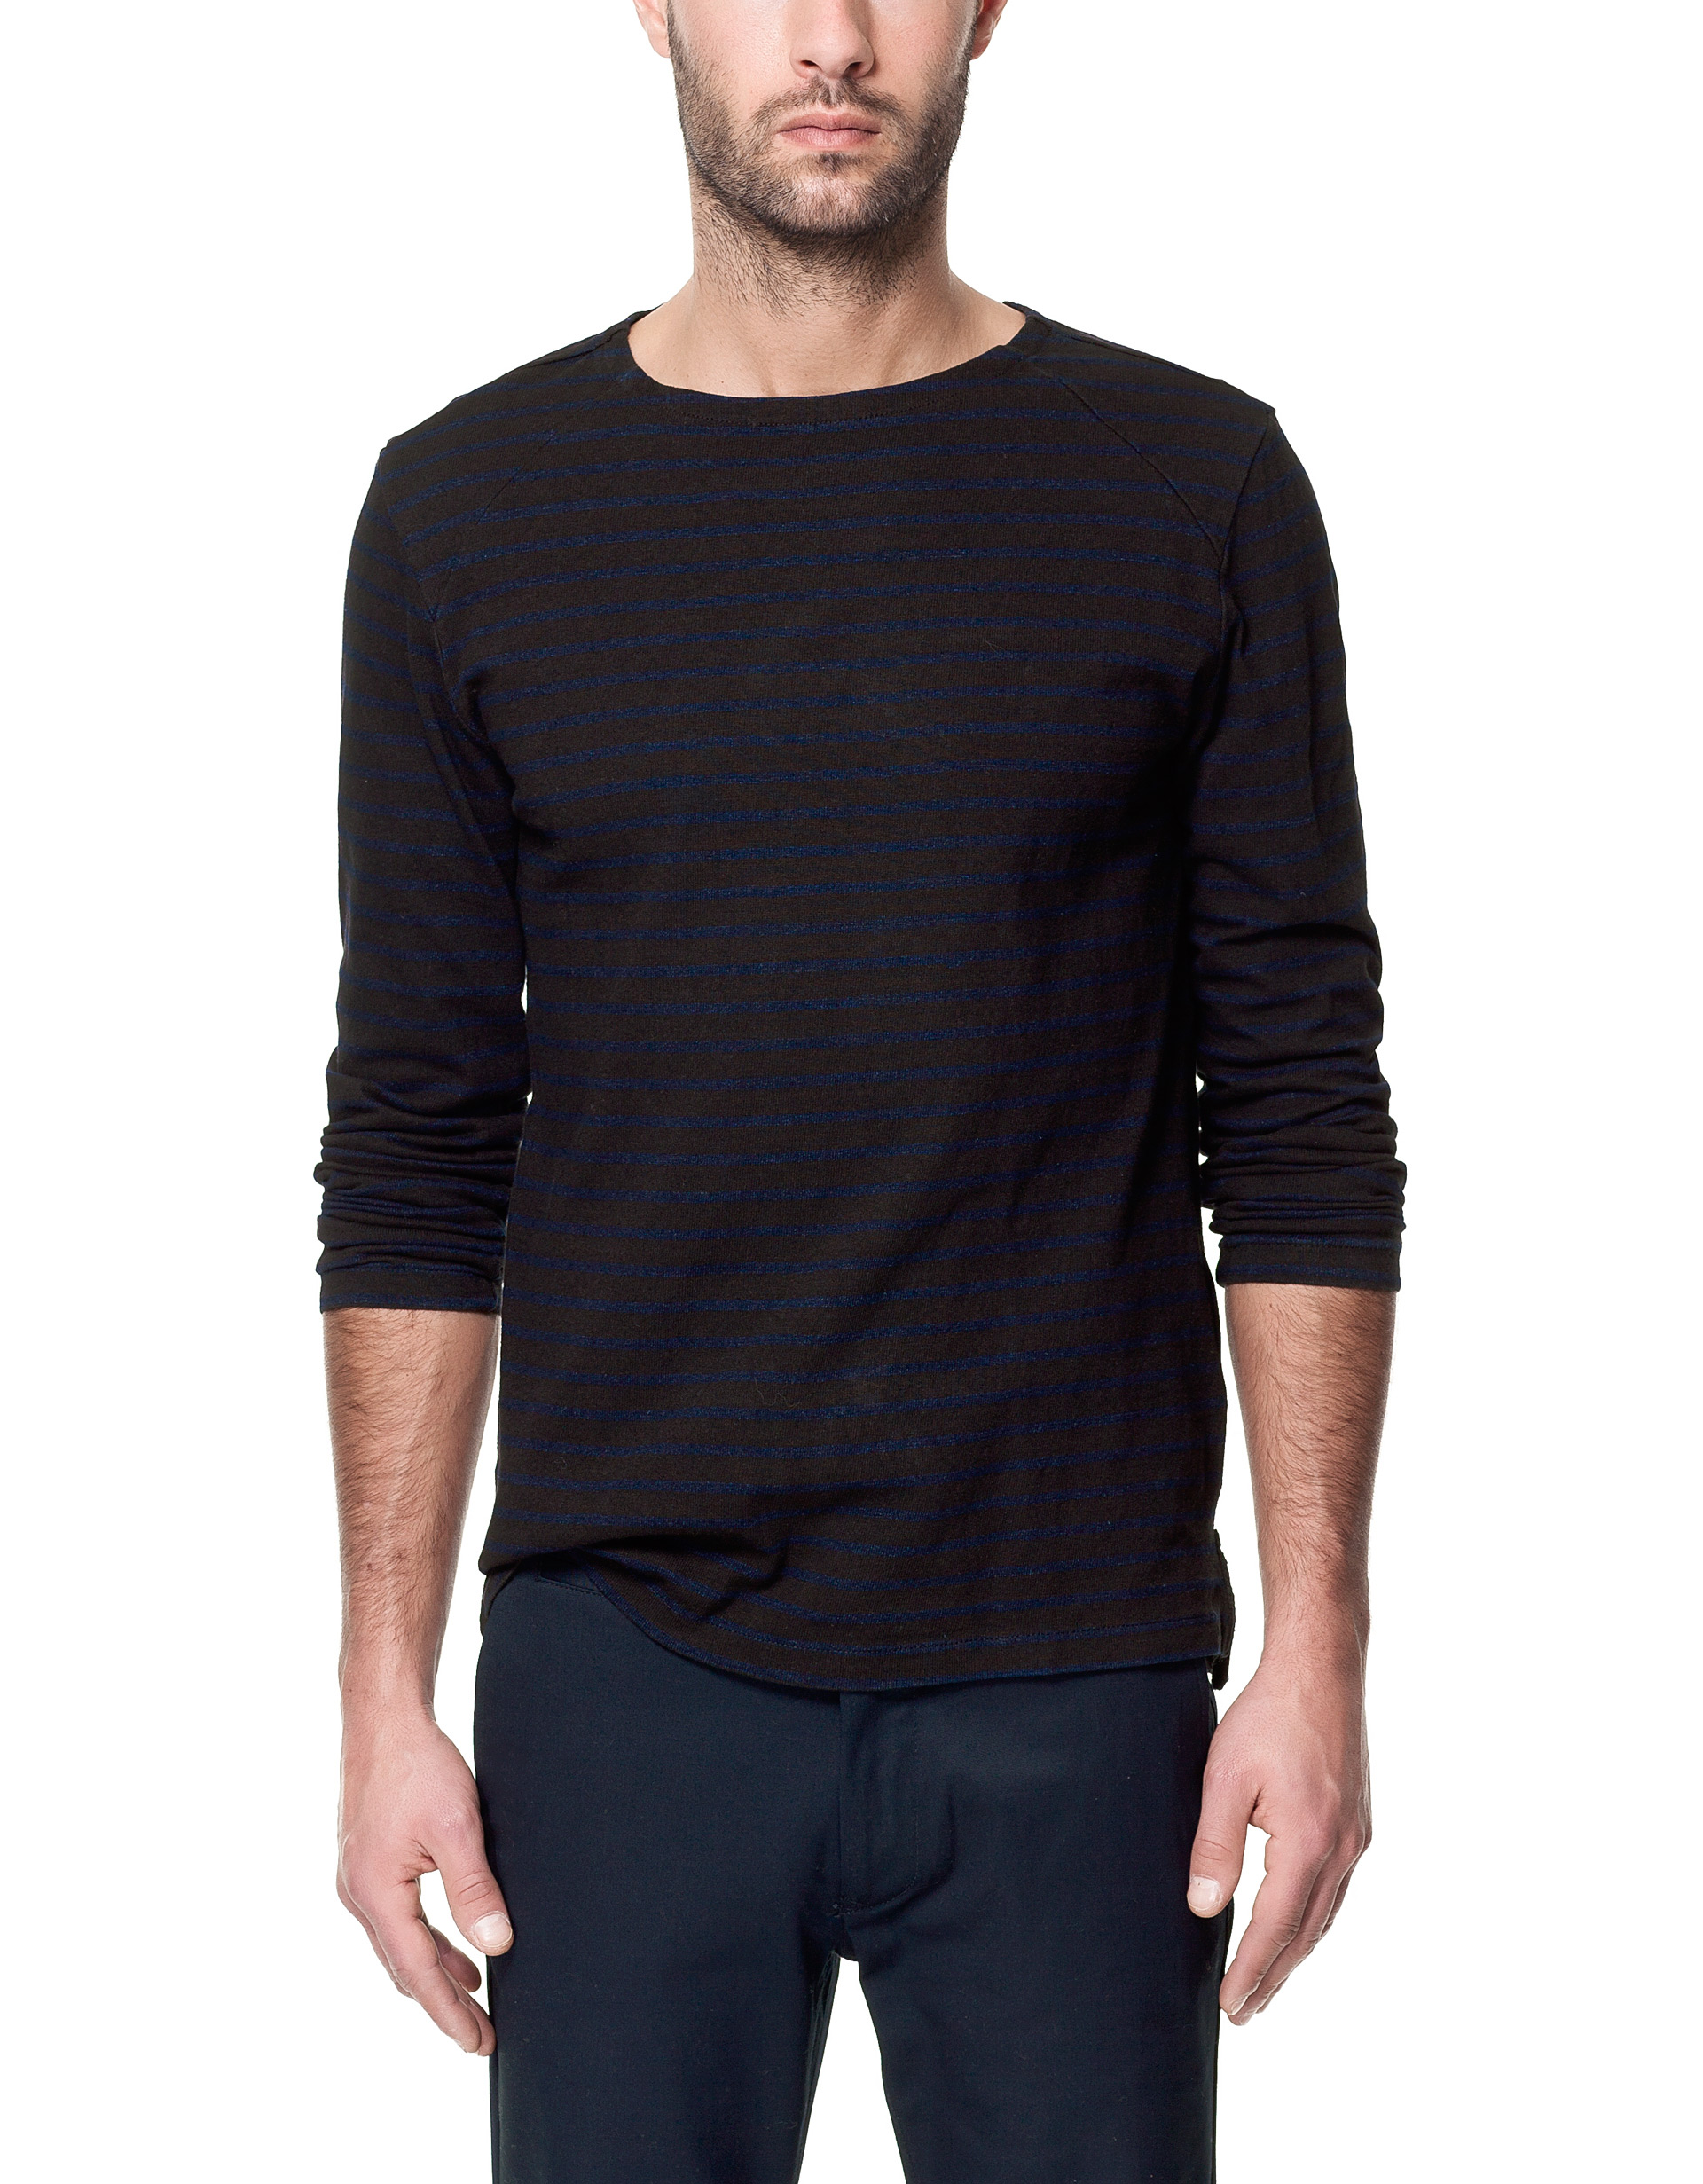 Zara long sleeves t shirt in black for men lyst for Long sleeve black tee shirts